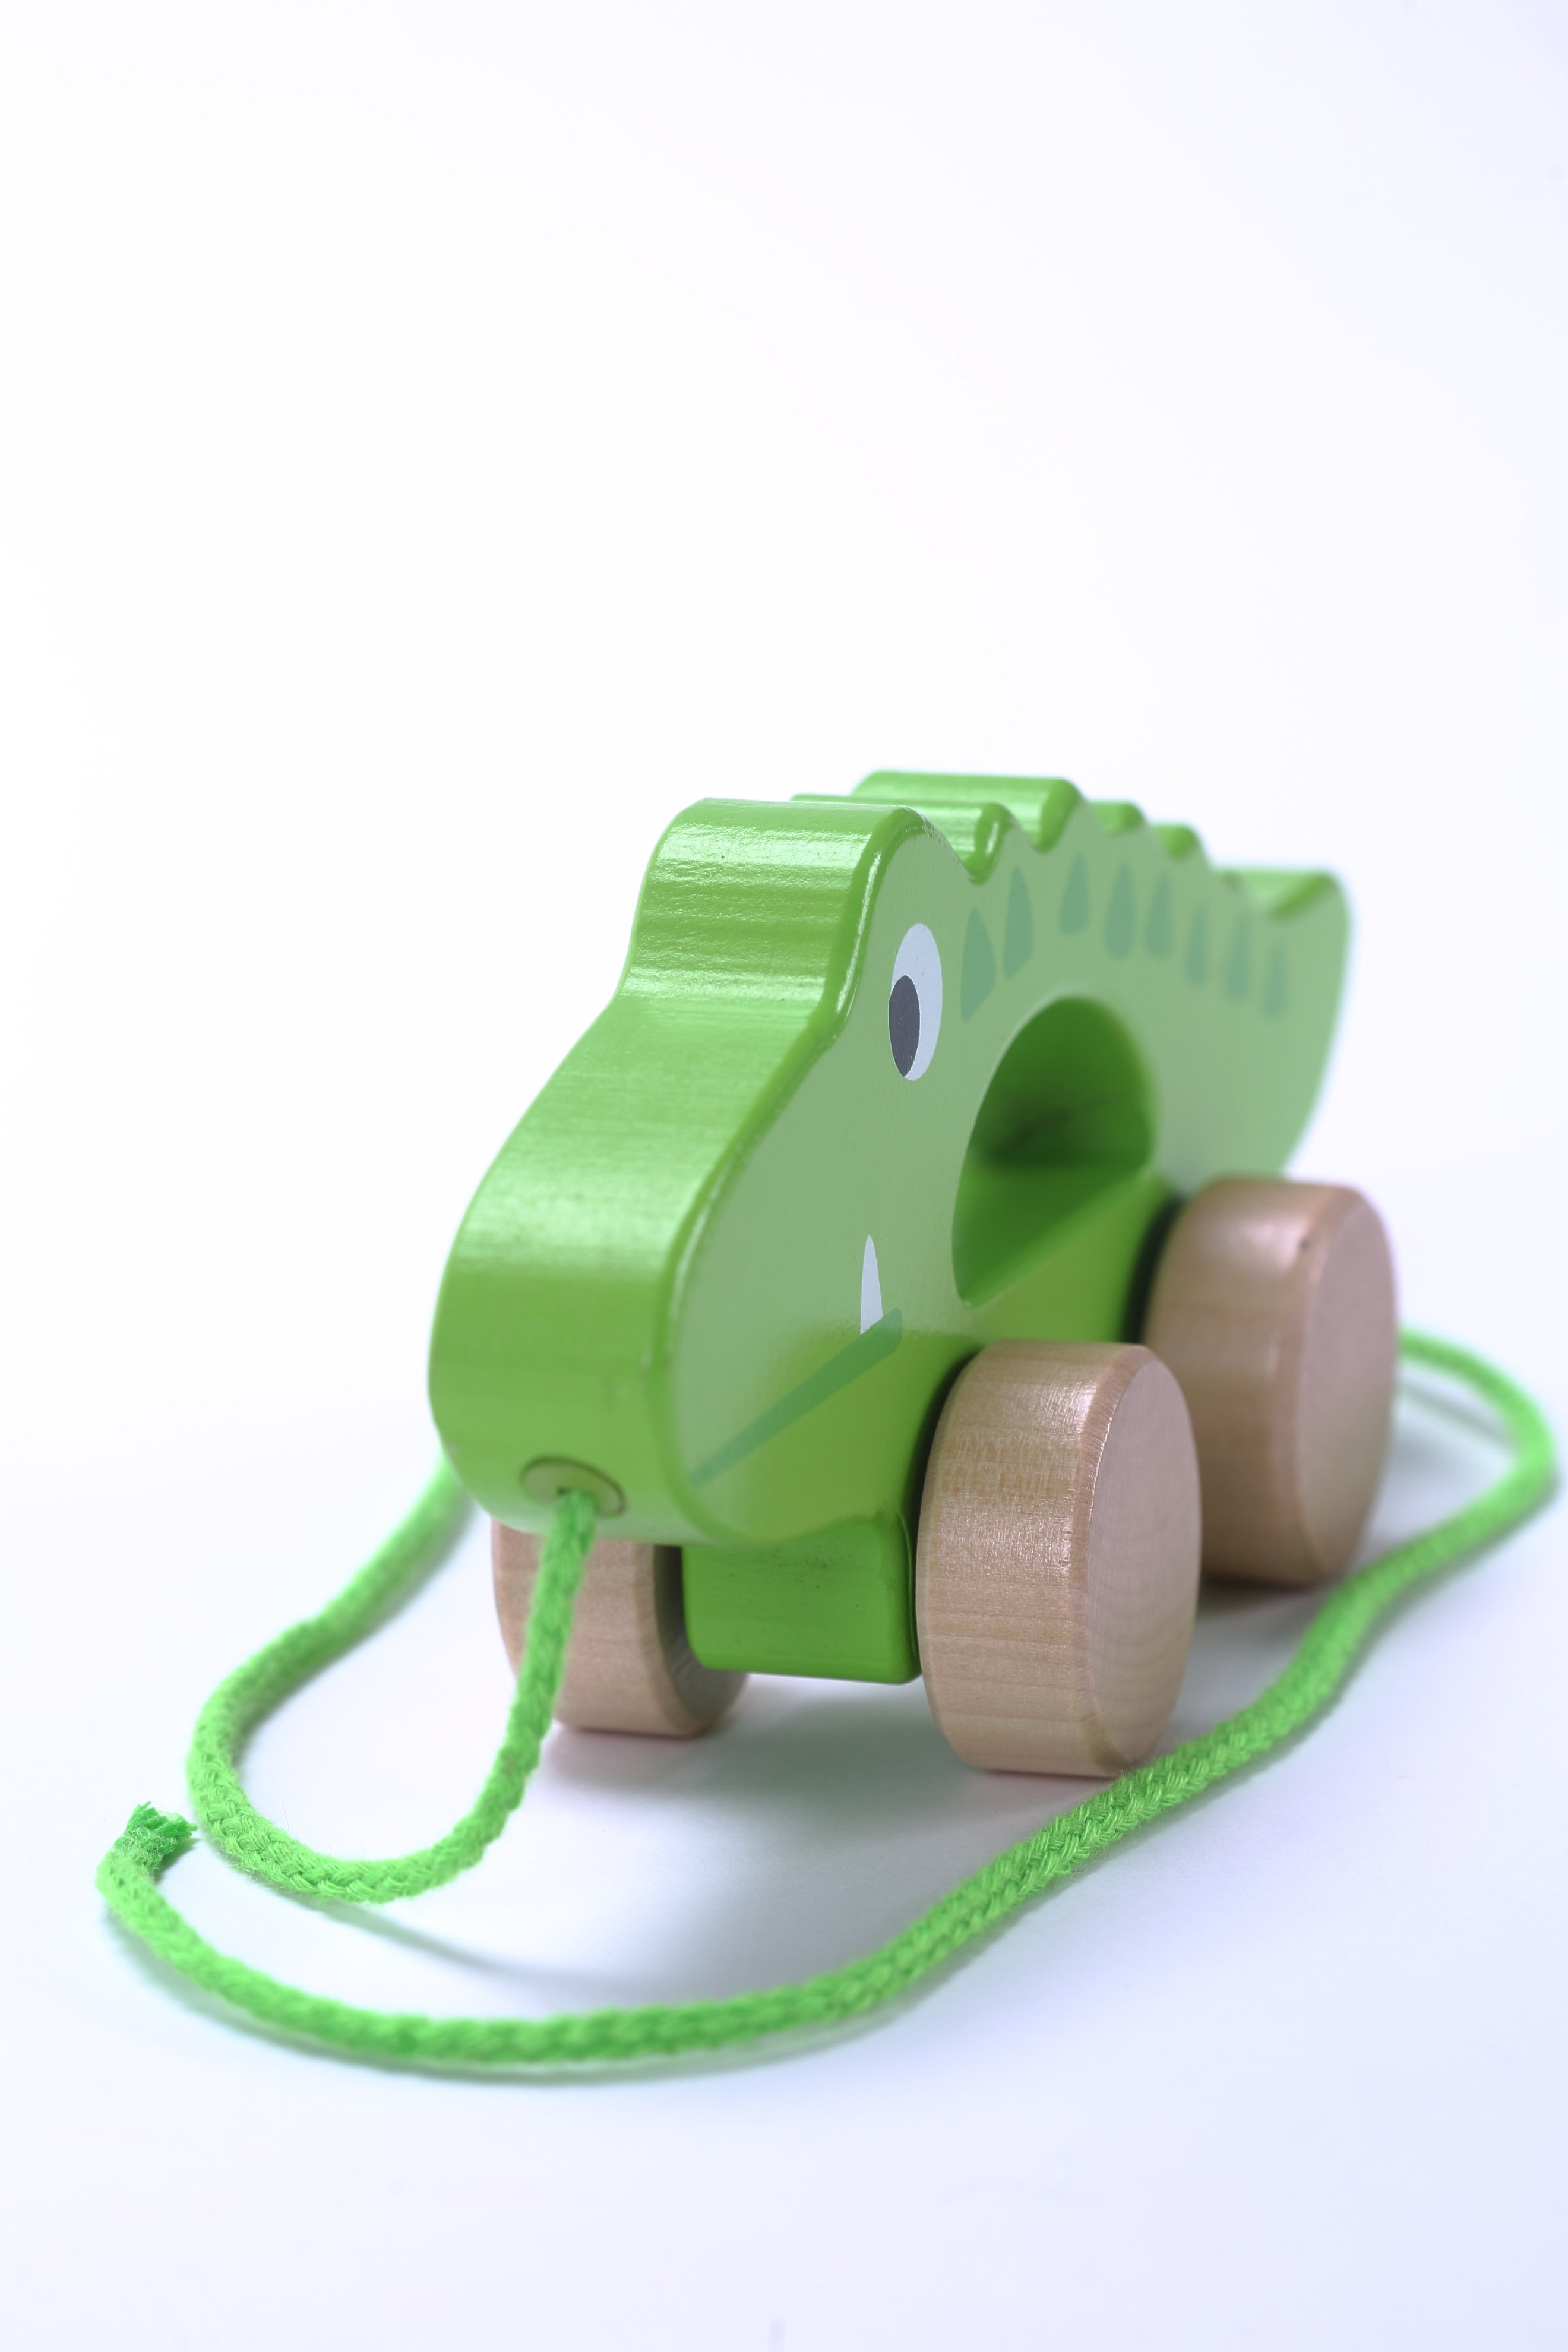 Adorable Crocodile Wooden Push & Pull Along Toy for Baby & Toddler - Rolls Easy with a Sturdy String